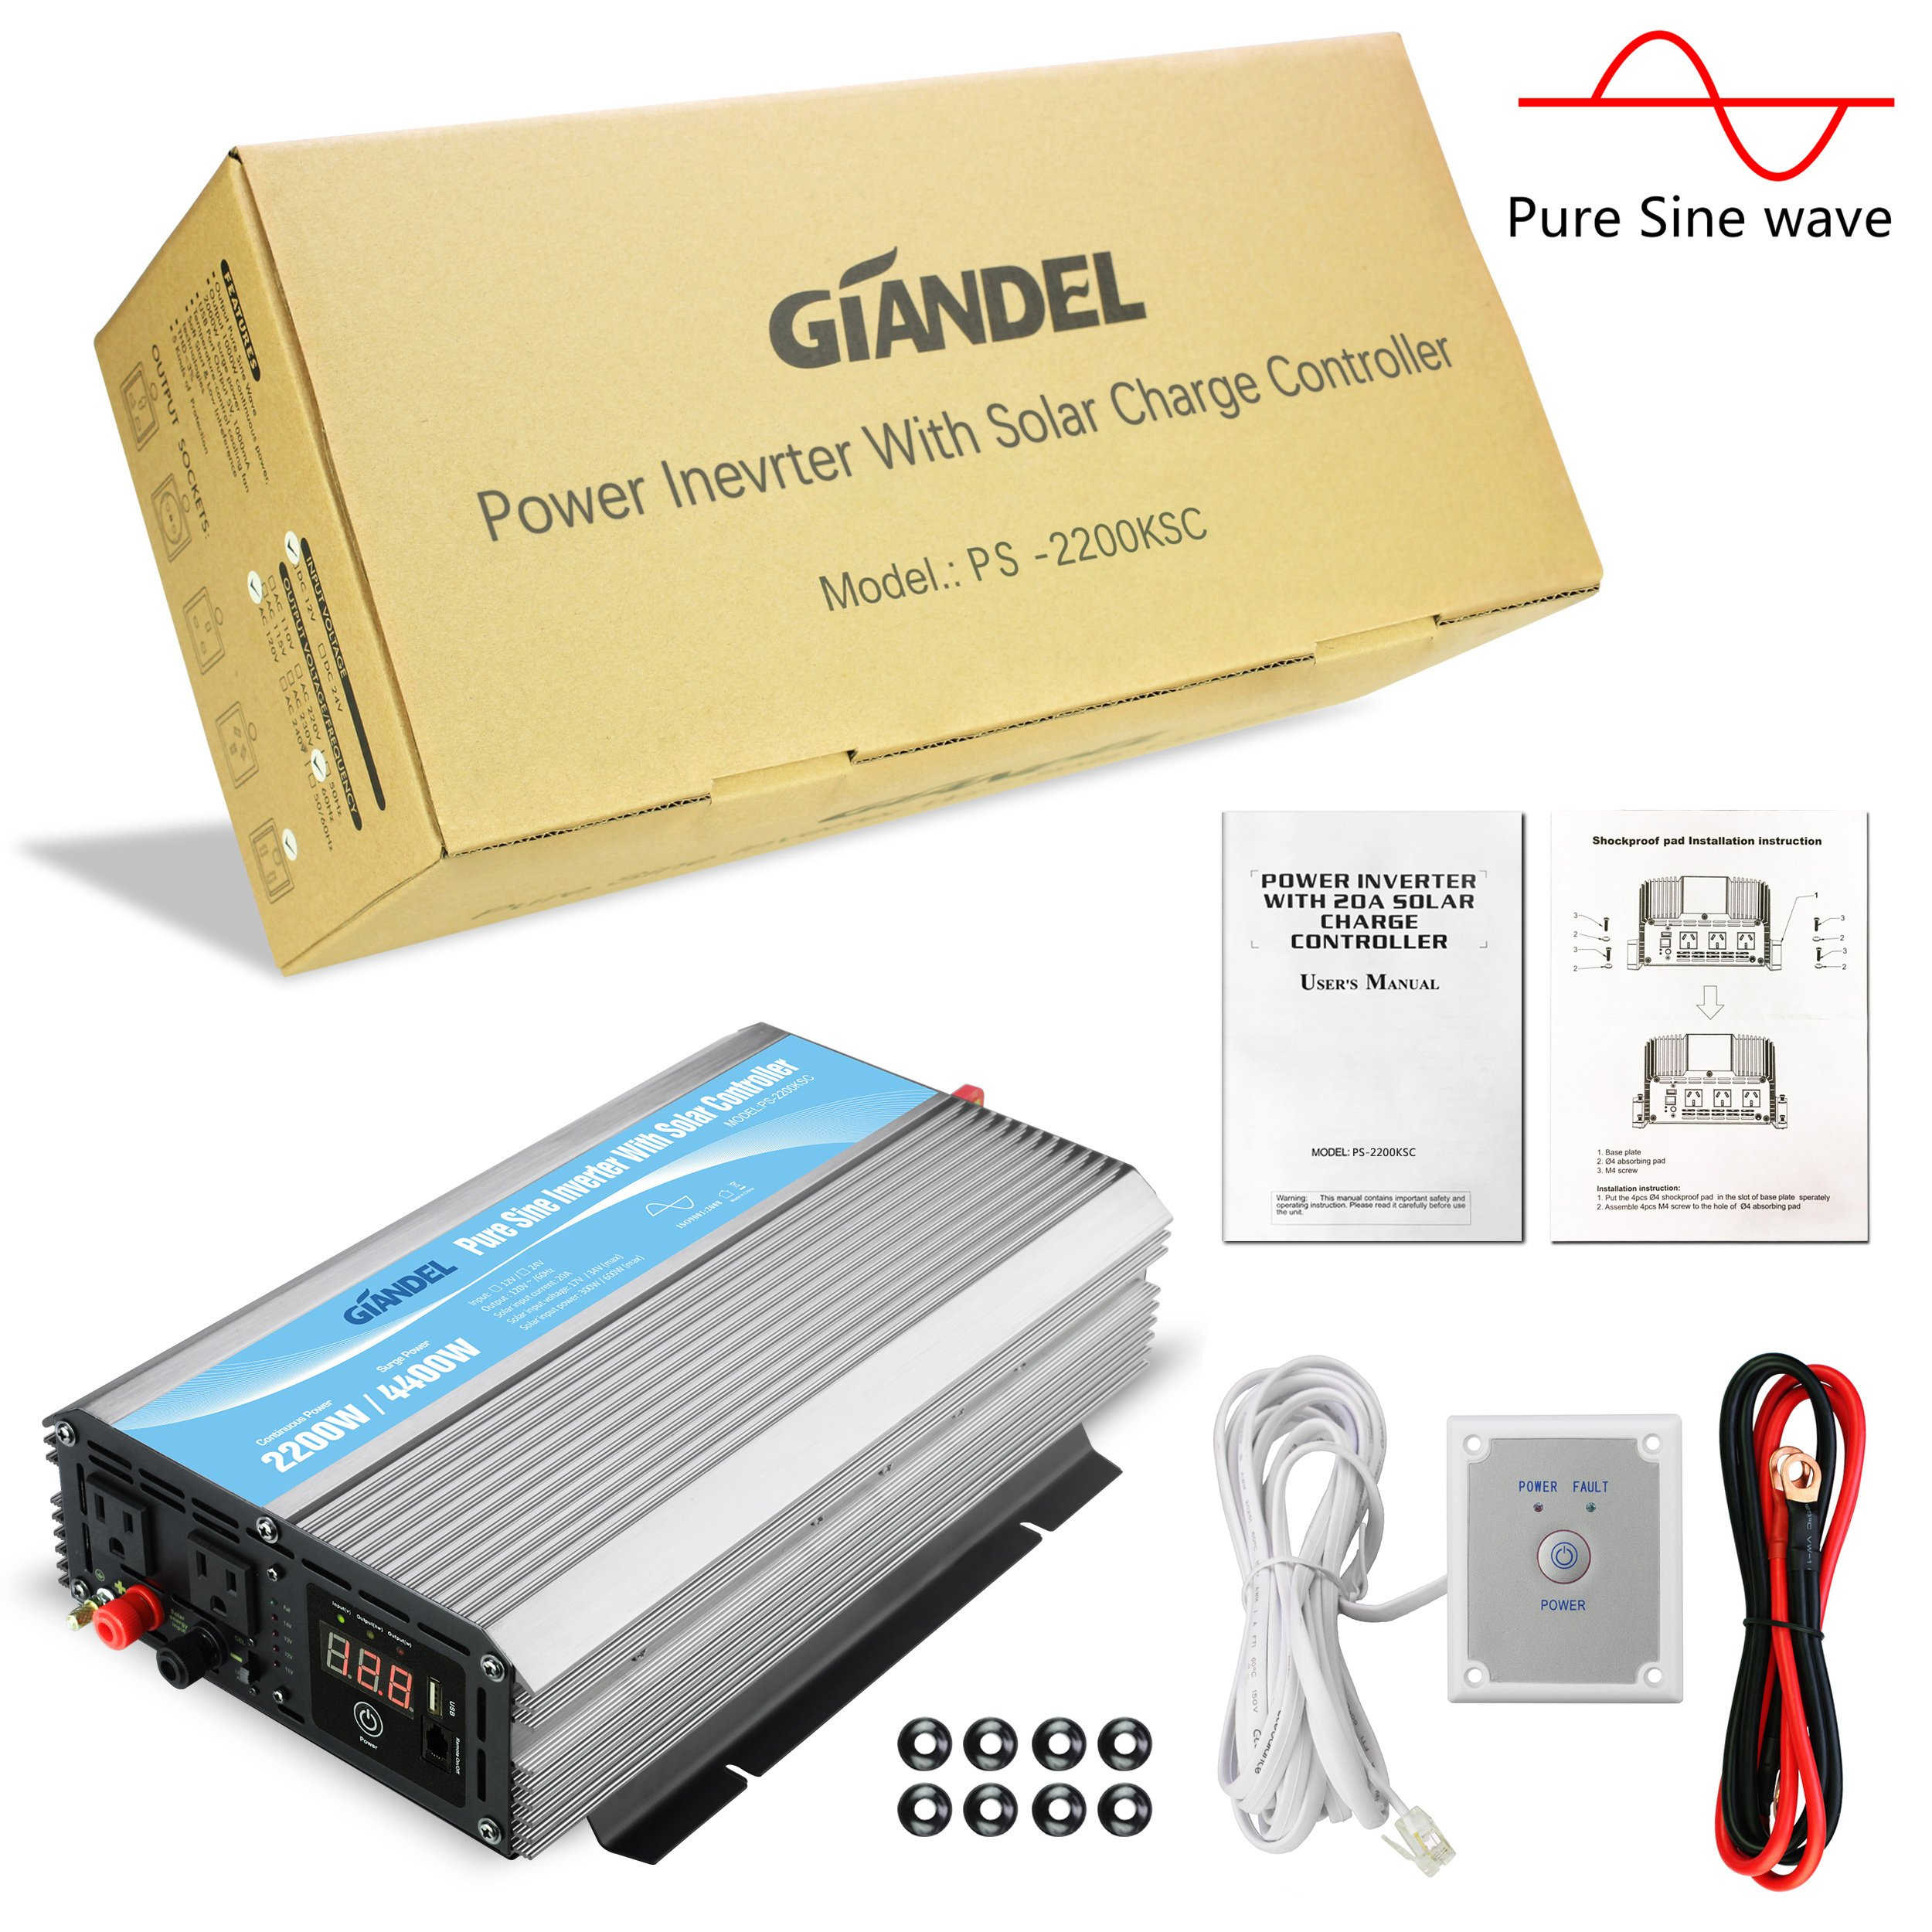 Giandel 2200W Pure Sine Wave Power Inverter 12V DC to 120V AC with 20A Solar Charge Control and Remote Control&LED Display and Dual AC Outlets &1x2.4A USB Port for RV Truck Car Solar System by Giandel (Image #6)